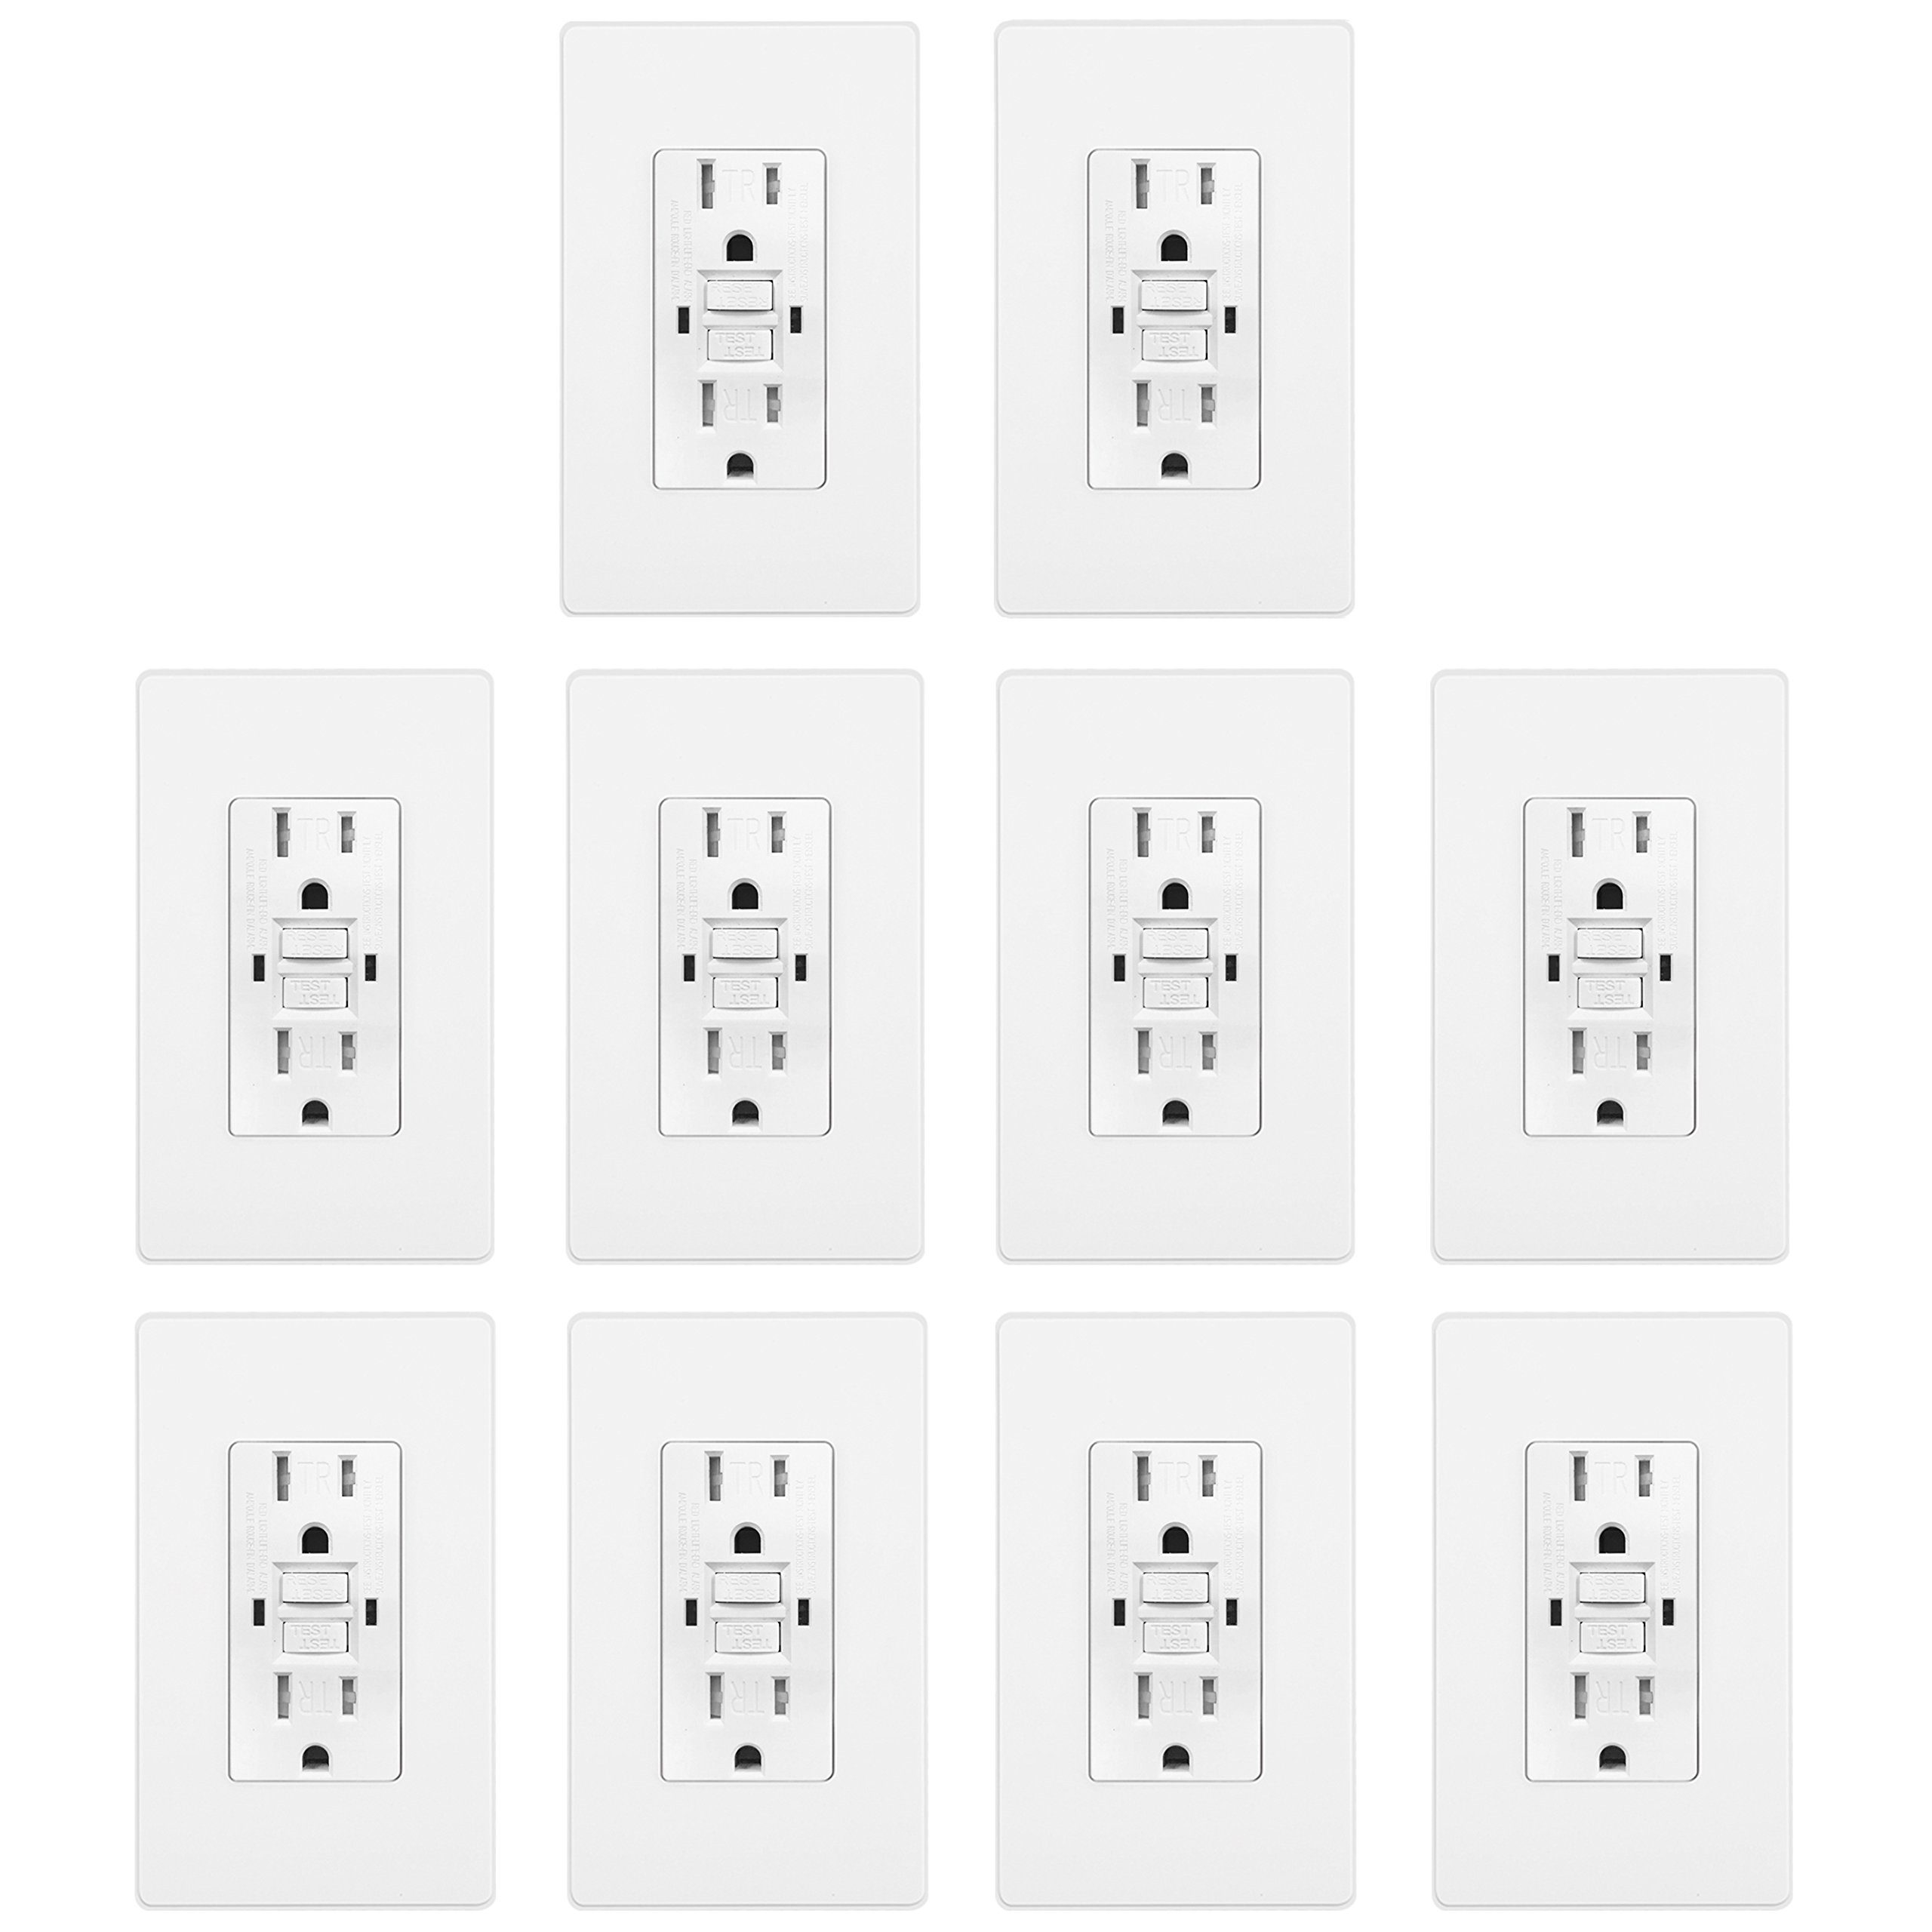 [10 Pack] BESTTEN 15A Dual Indicator Self Test GFCI Receptacle, 15A/125V/1875W, Tamper Resistant Outlet, 2 Wall Plates and Screws Included, Auto-Test Function, UL Certified, White